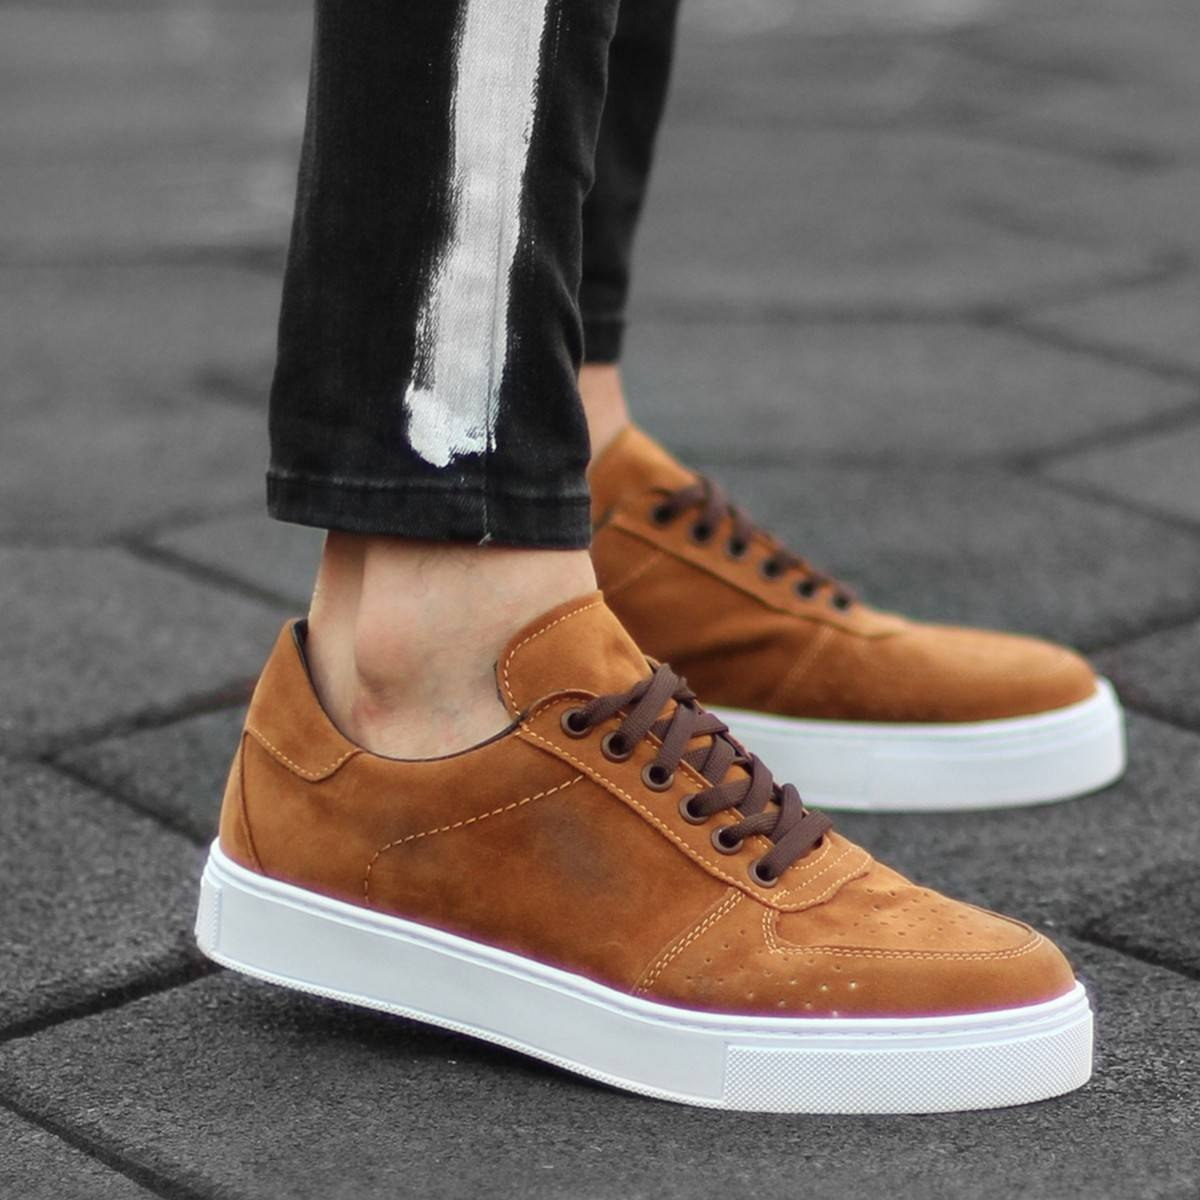 MV Tan Suede Low-Cut Sneakers